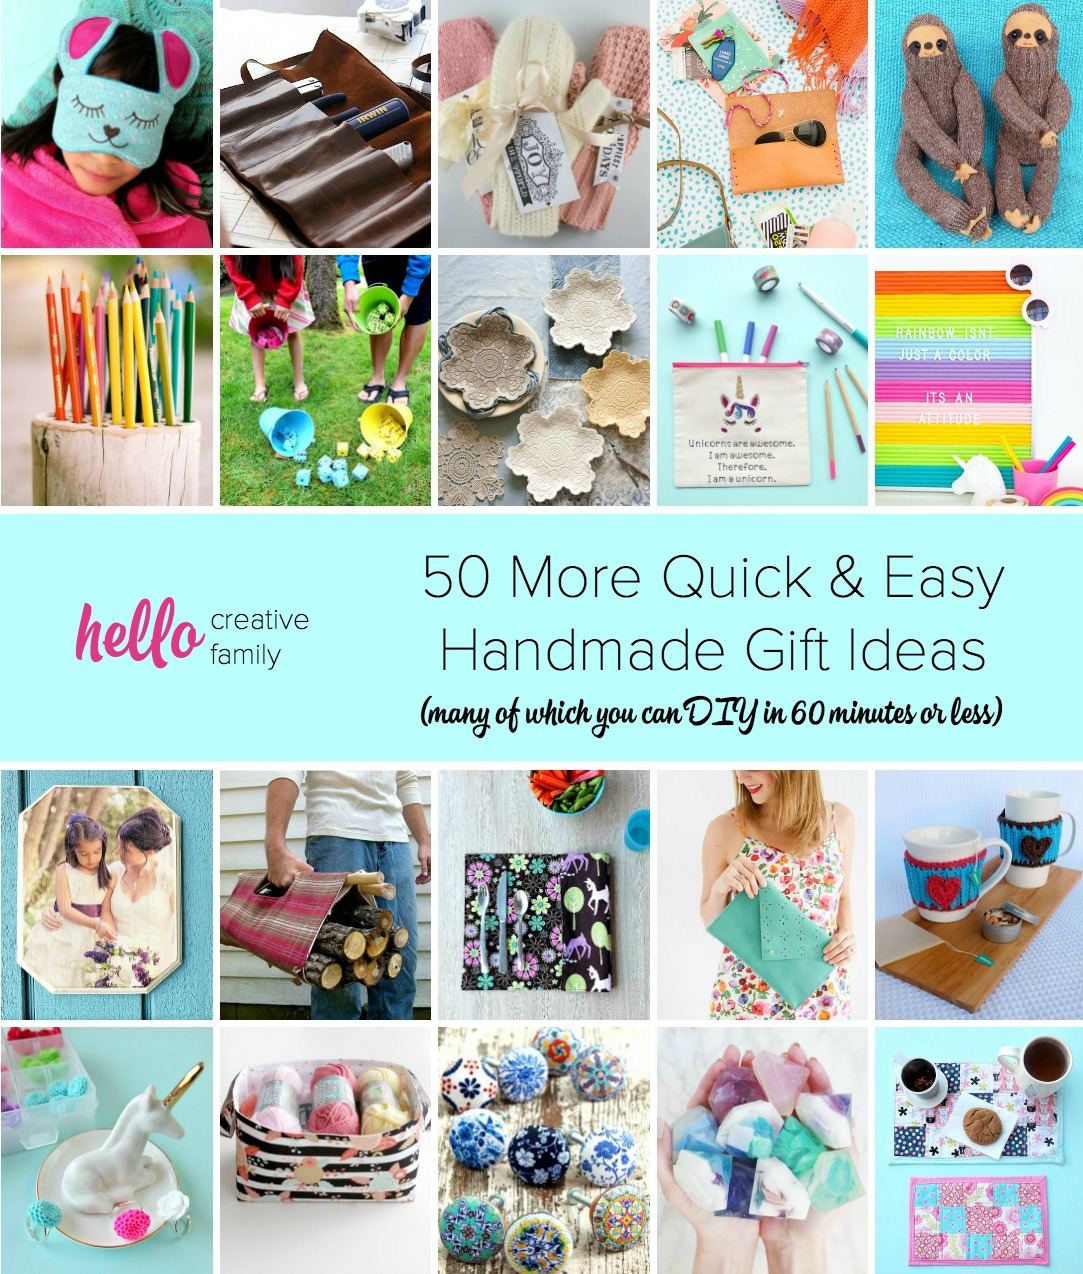 Whether you're looking for ideas for Christmas, Mother's Day, Father's Day or birthdays, we've got you covered with 50+ quick and easy handmade gift ideas most of which you can DIY in 1 hour (60 minutes) or less! #handmadegift #diy #crafting